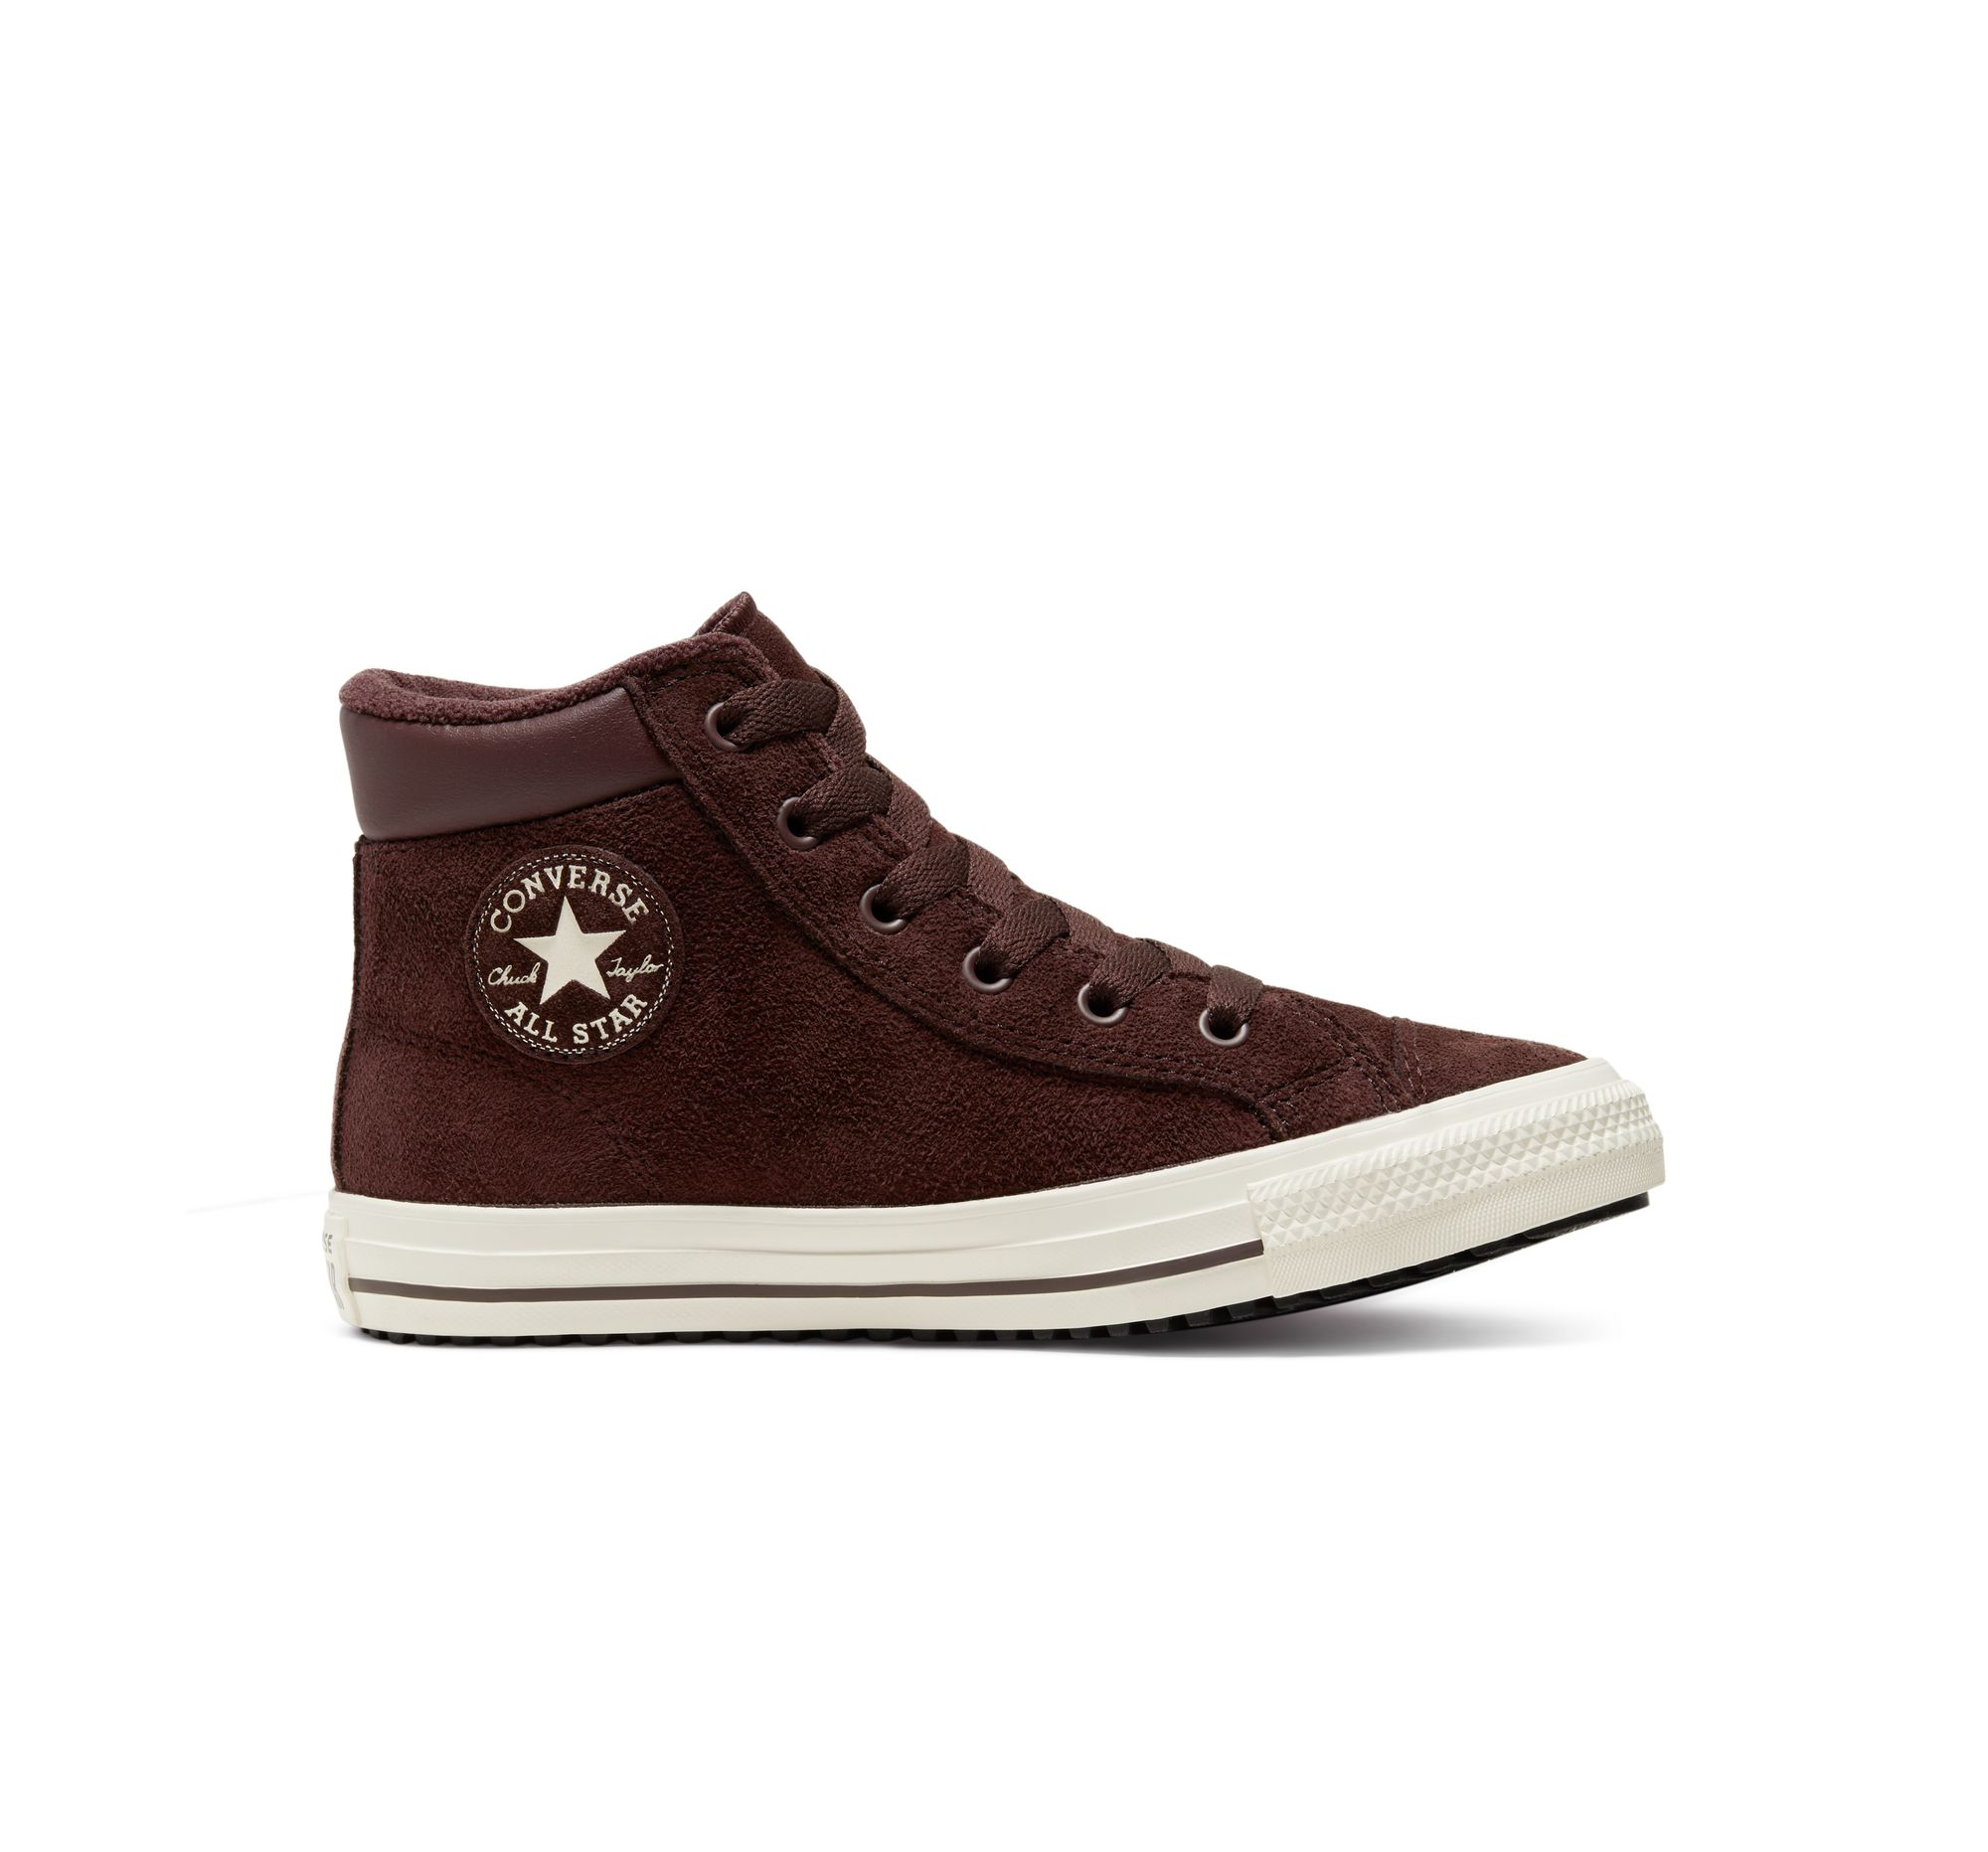 Suede Chuck Taylor All Star PC Boot | Chuck taylor all star